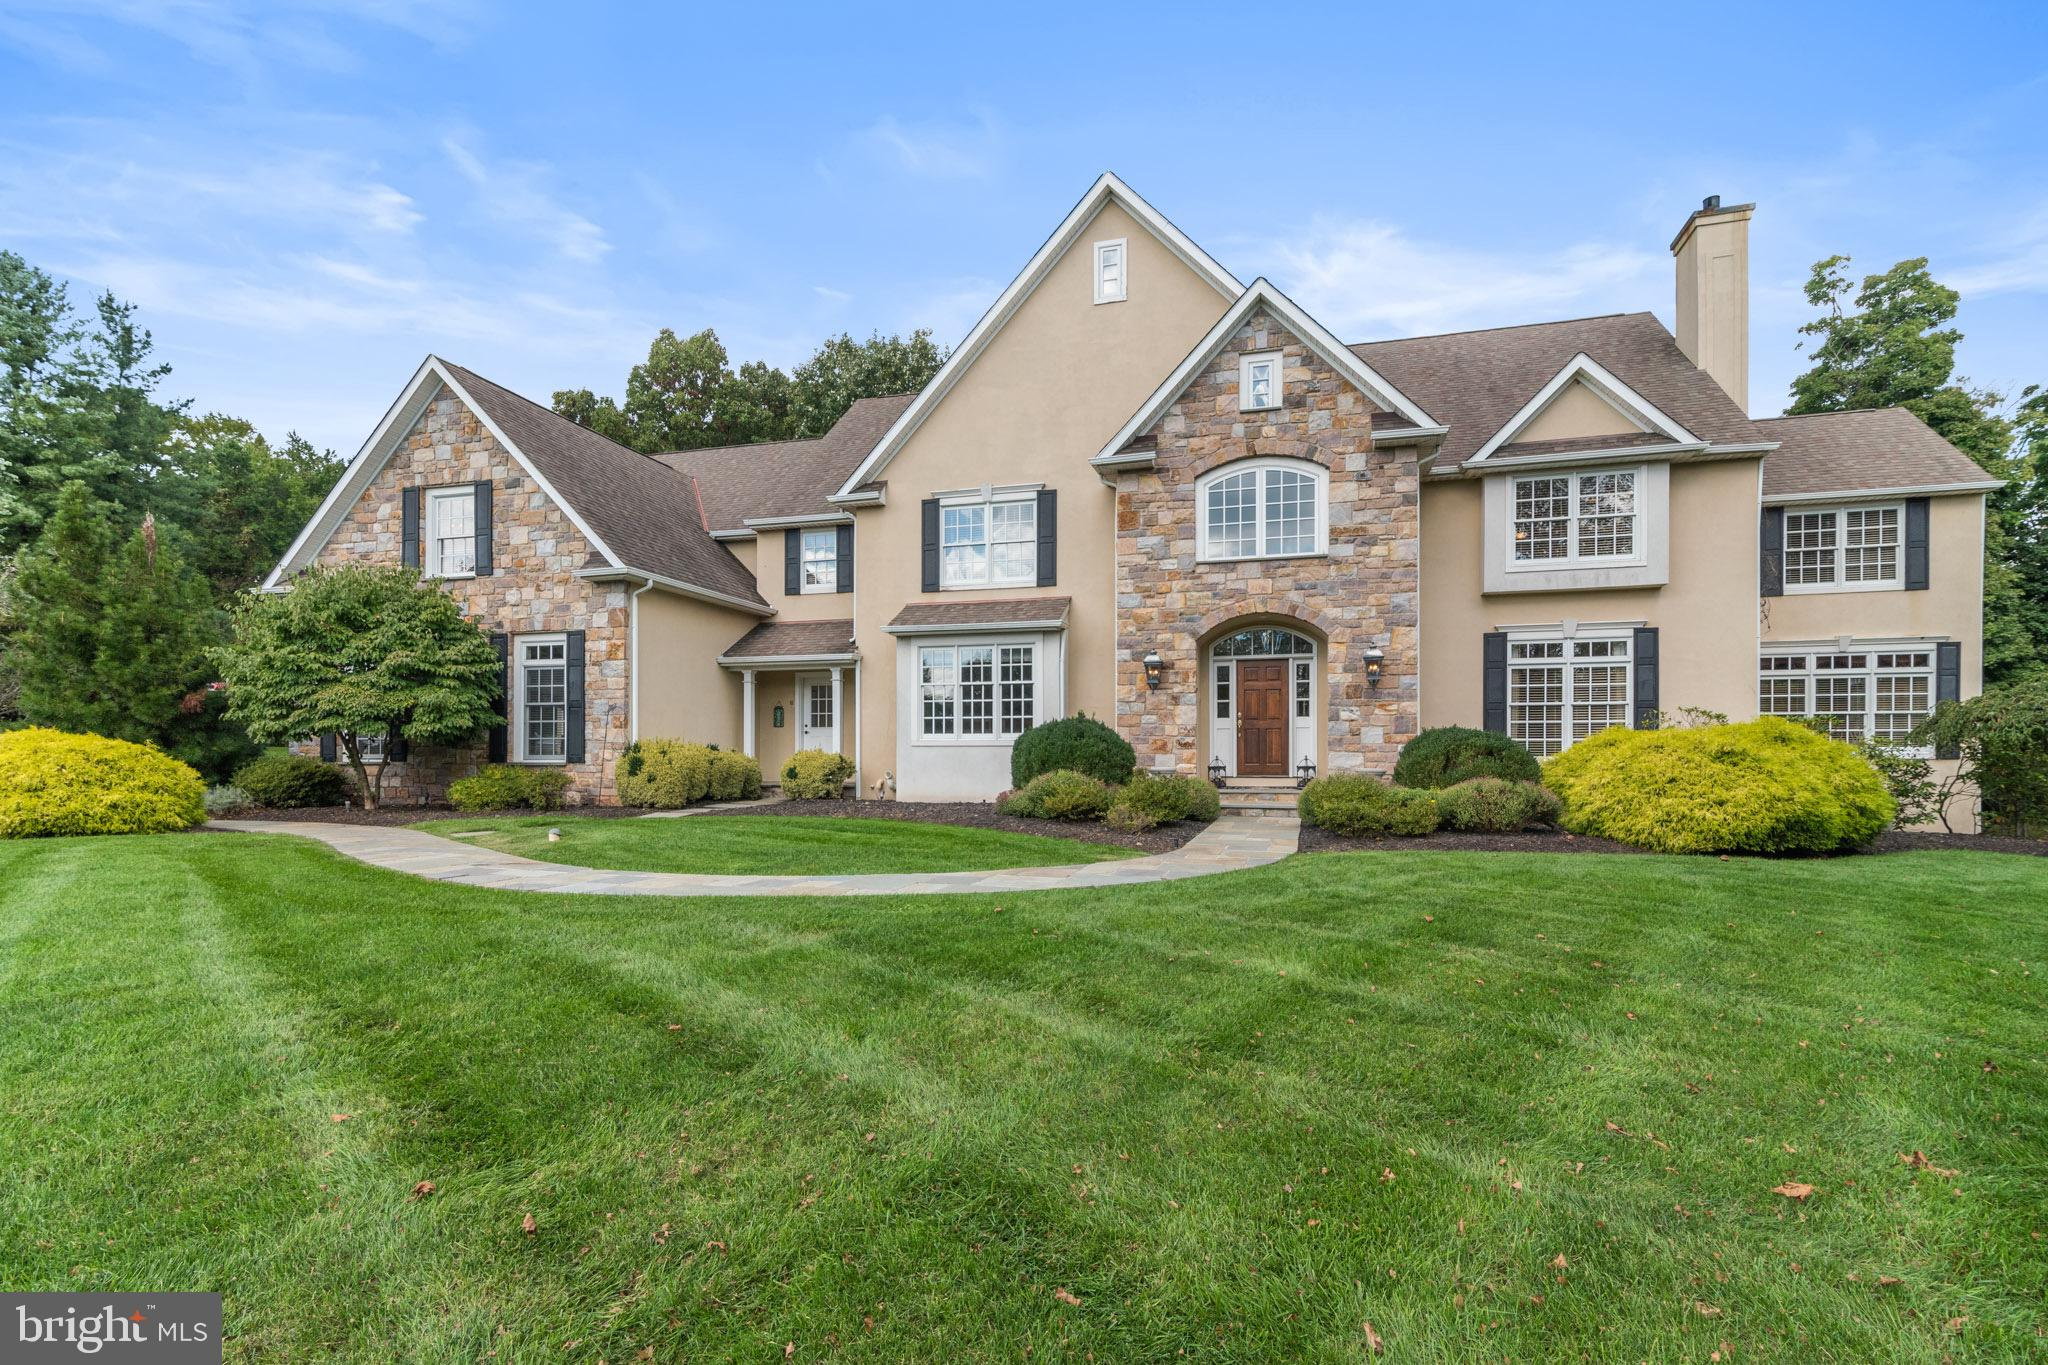 10 DEVONSHIRES COURT, BLUE BELL, PA 19422